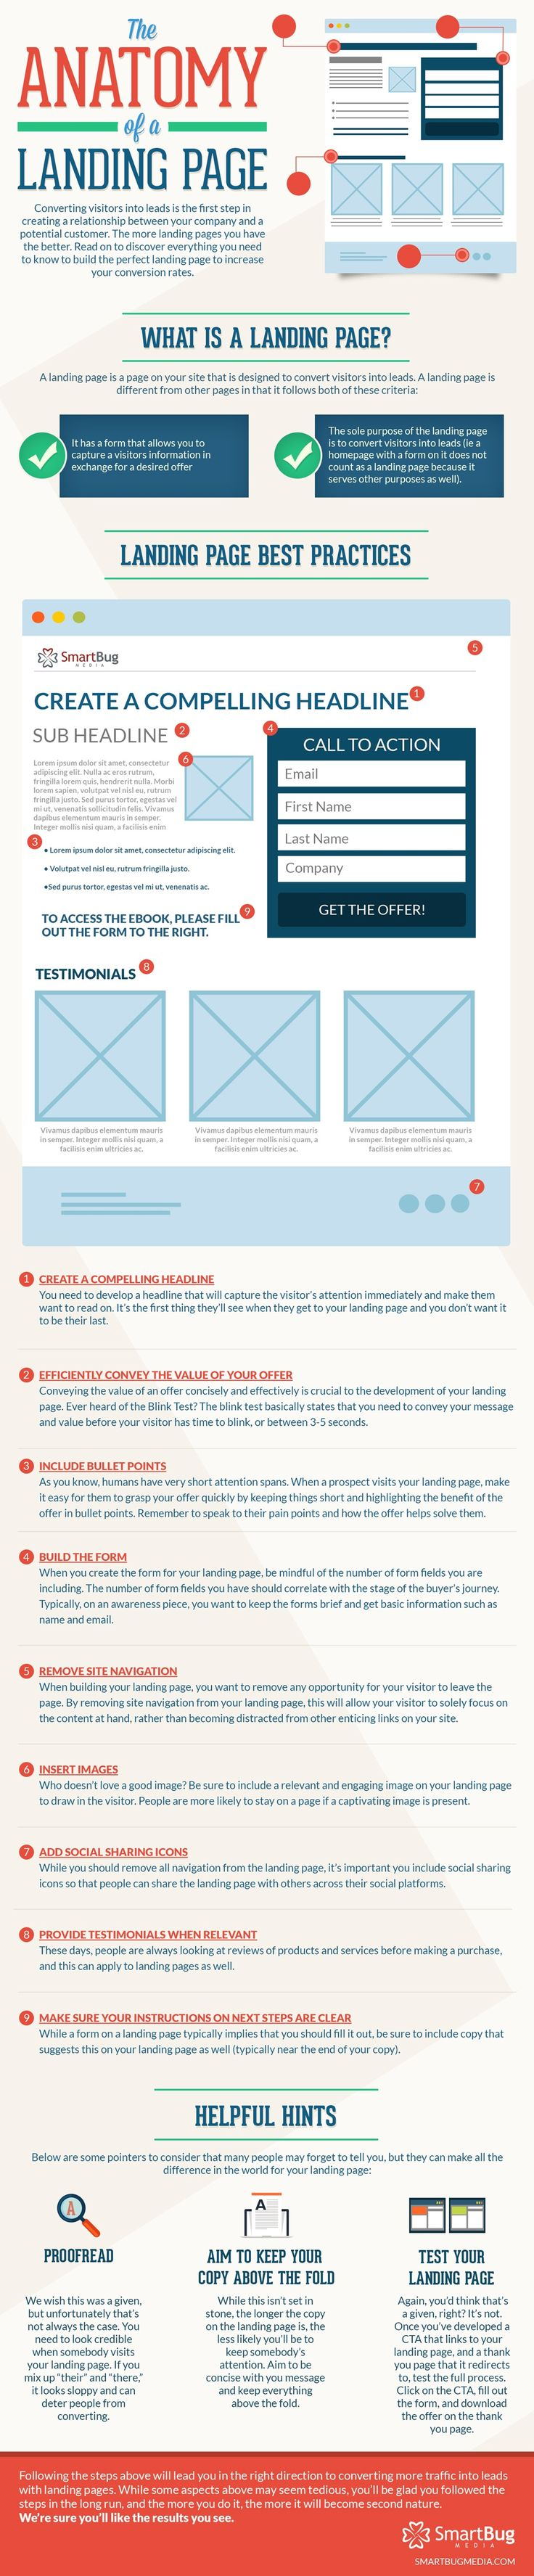 Landing Page Design Tips: How to Convert Website Visitors into Leads #Infographic #WebDesign